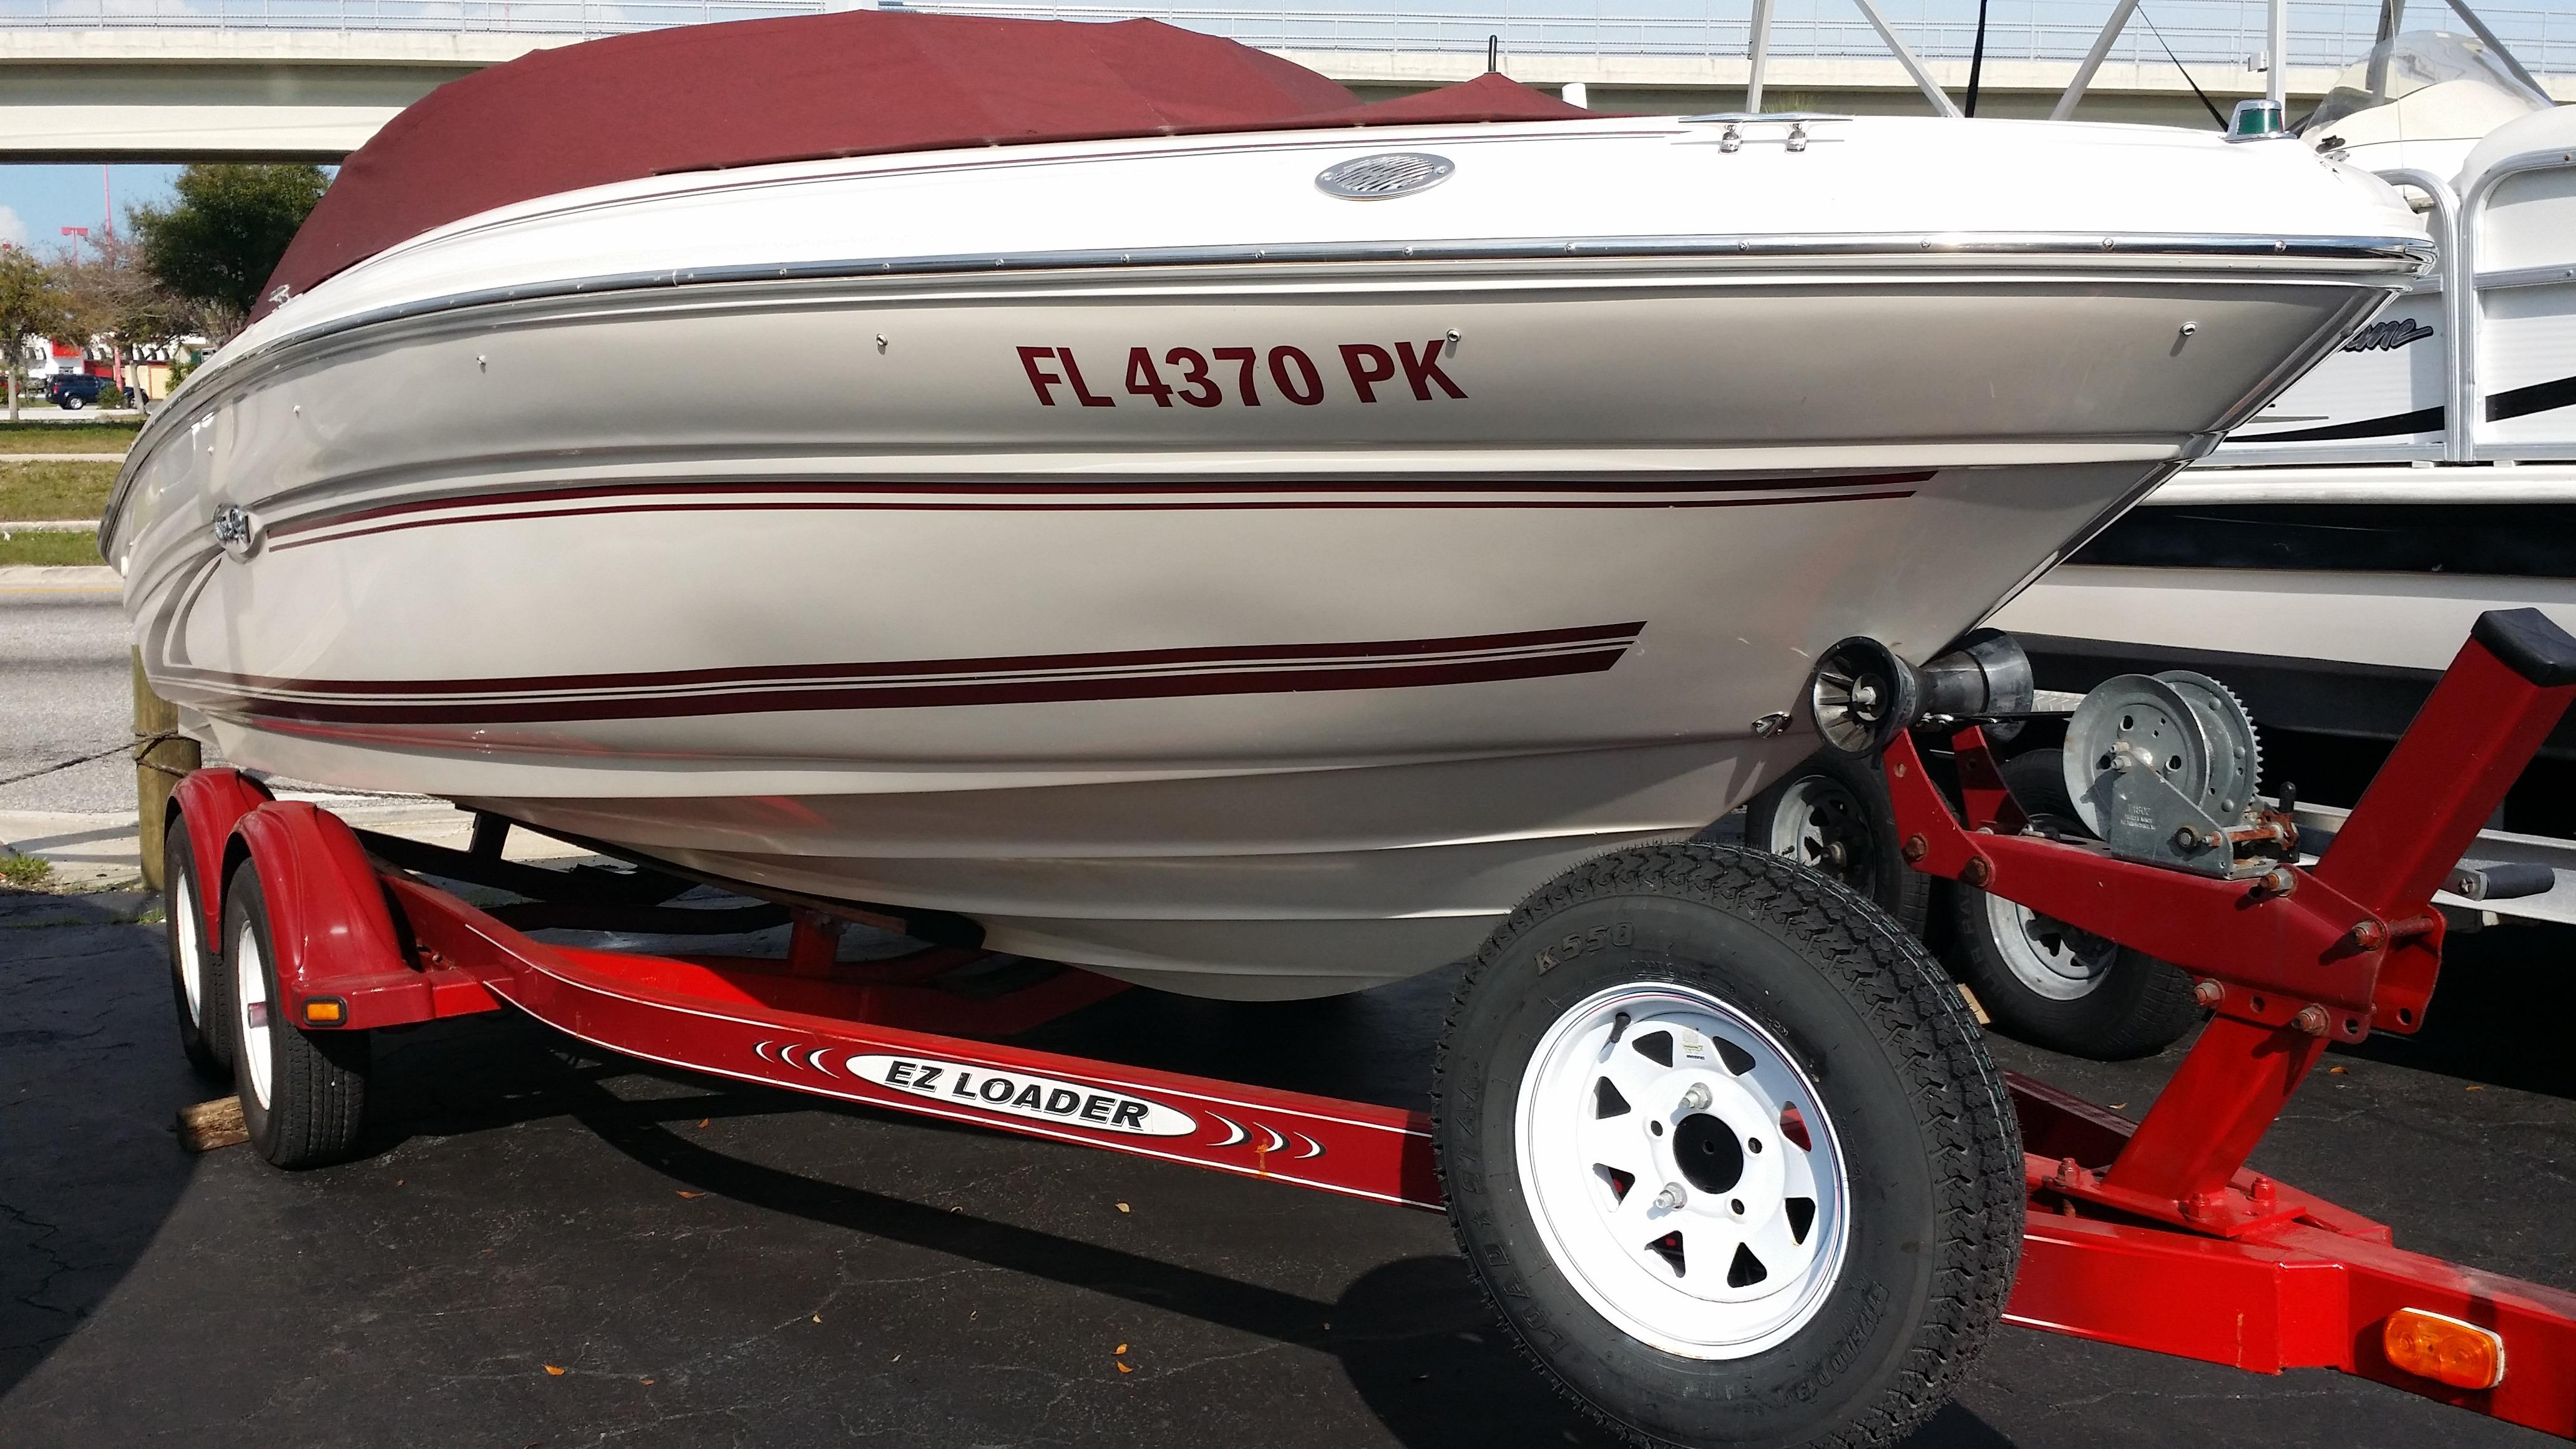 19 Foot Boats For Sale In Fl Boat Listings